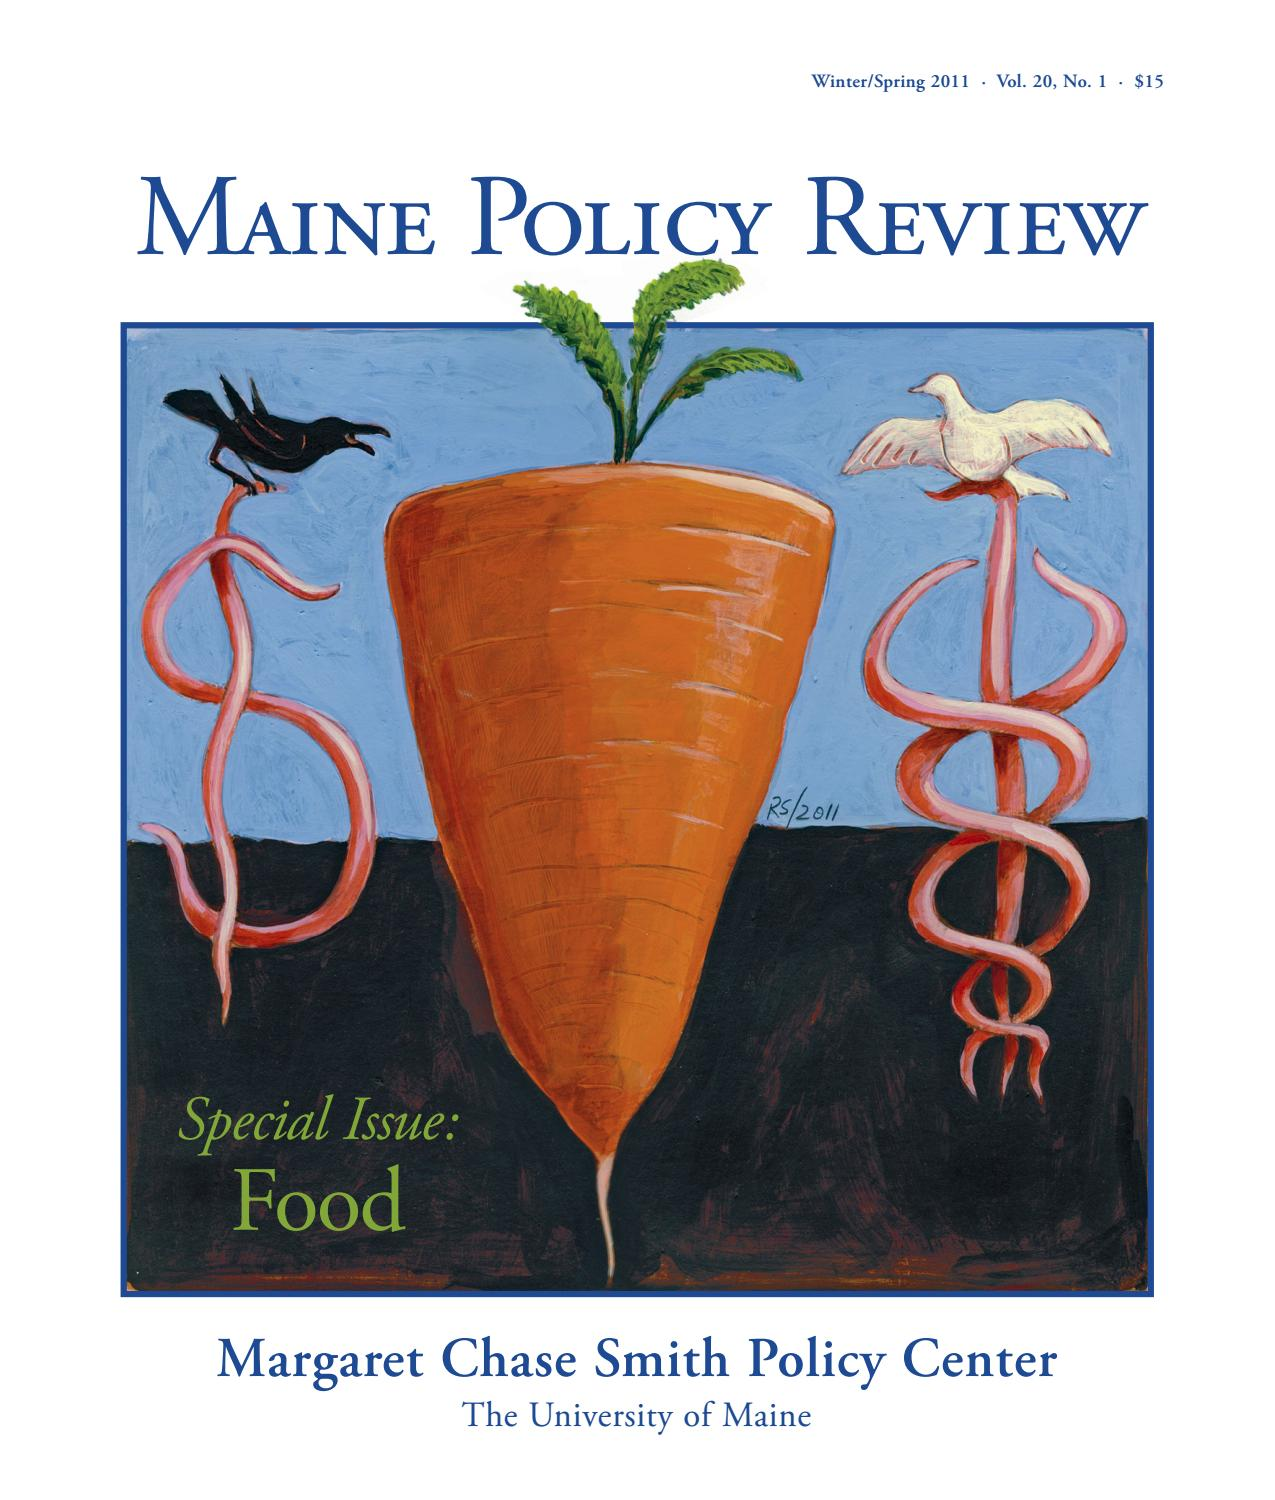 Maine Policy Review Winter/Spring 2011 by University of